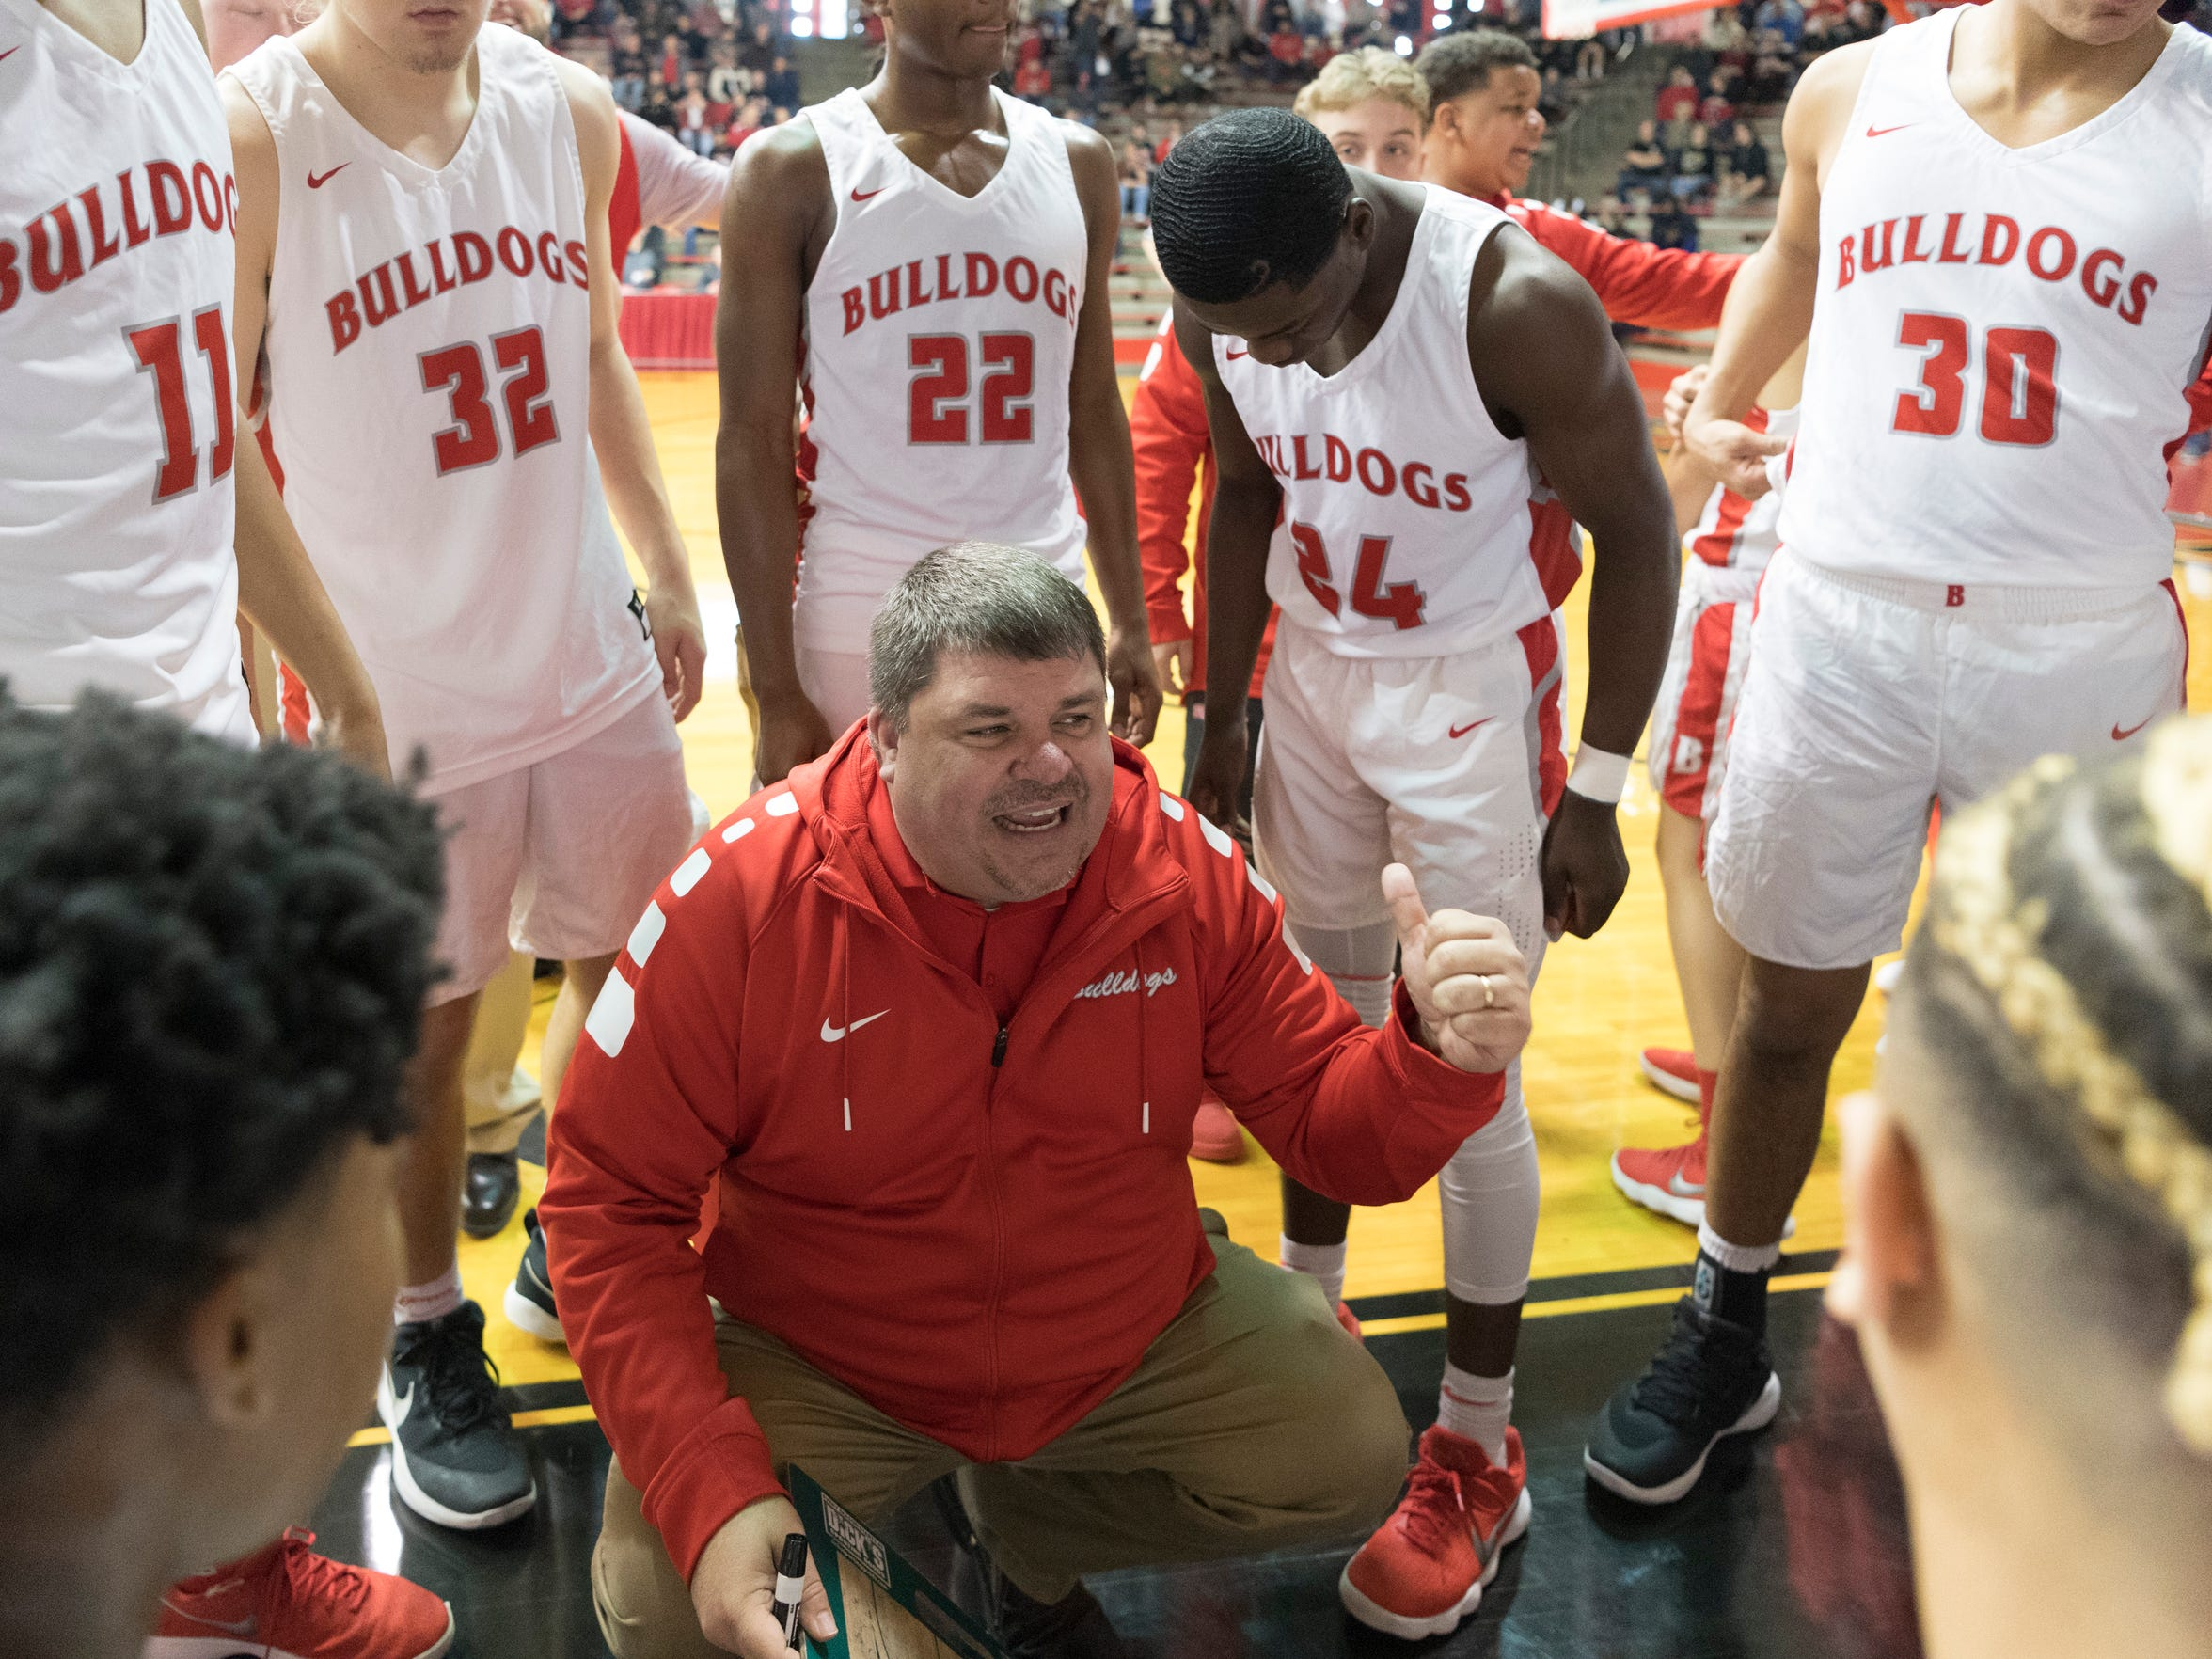 Bosse Head Coach Shane Burkhart talks to his team during a timeout in the first game of the IHSAA Class 3A Regional Tournament at Memorial Gym in Huntingburg, Ind., Saturday, March 10, 2018. The Bulldogs defeated the Pirates, 75-58, to advance to the evening's Regional Championship game.